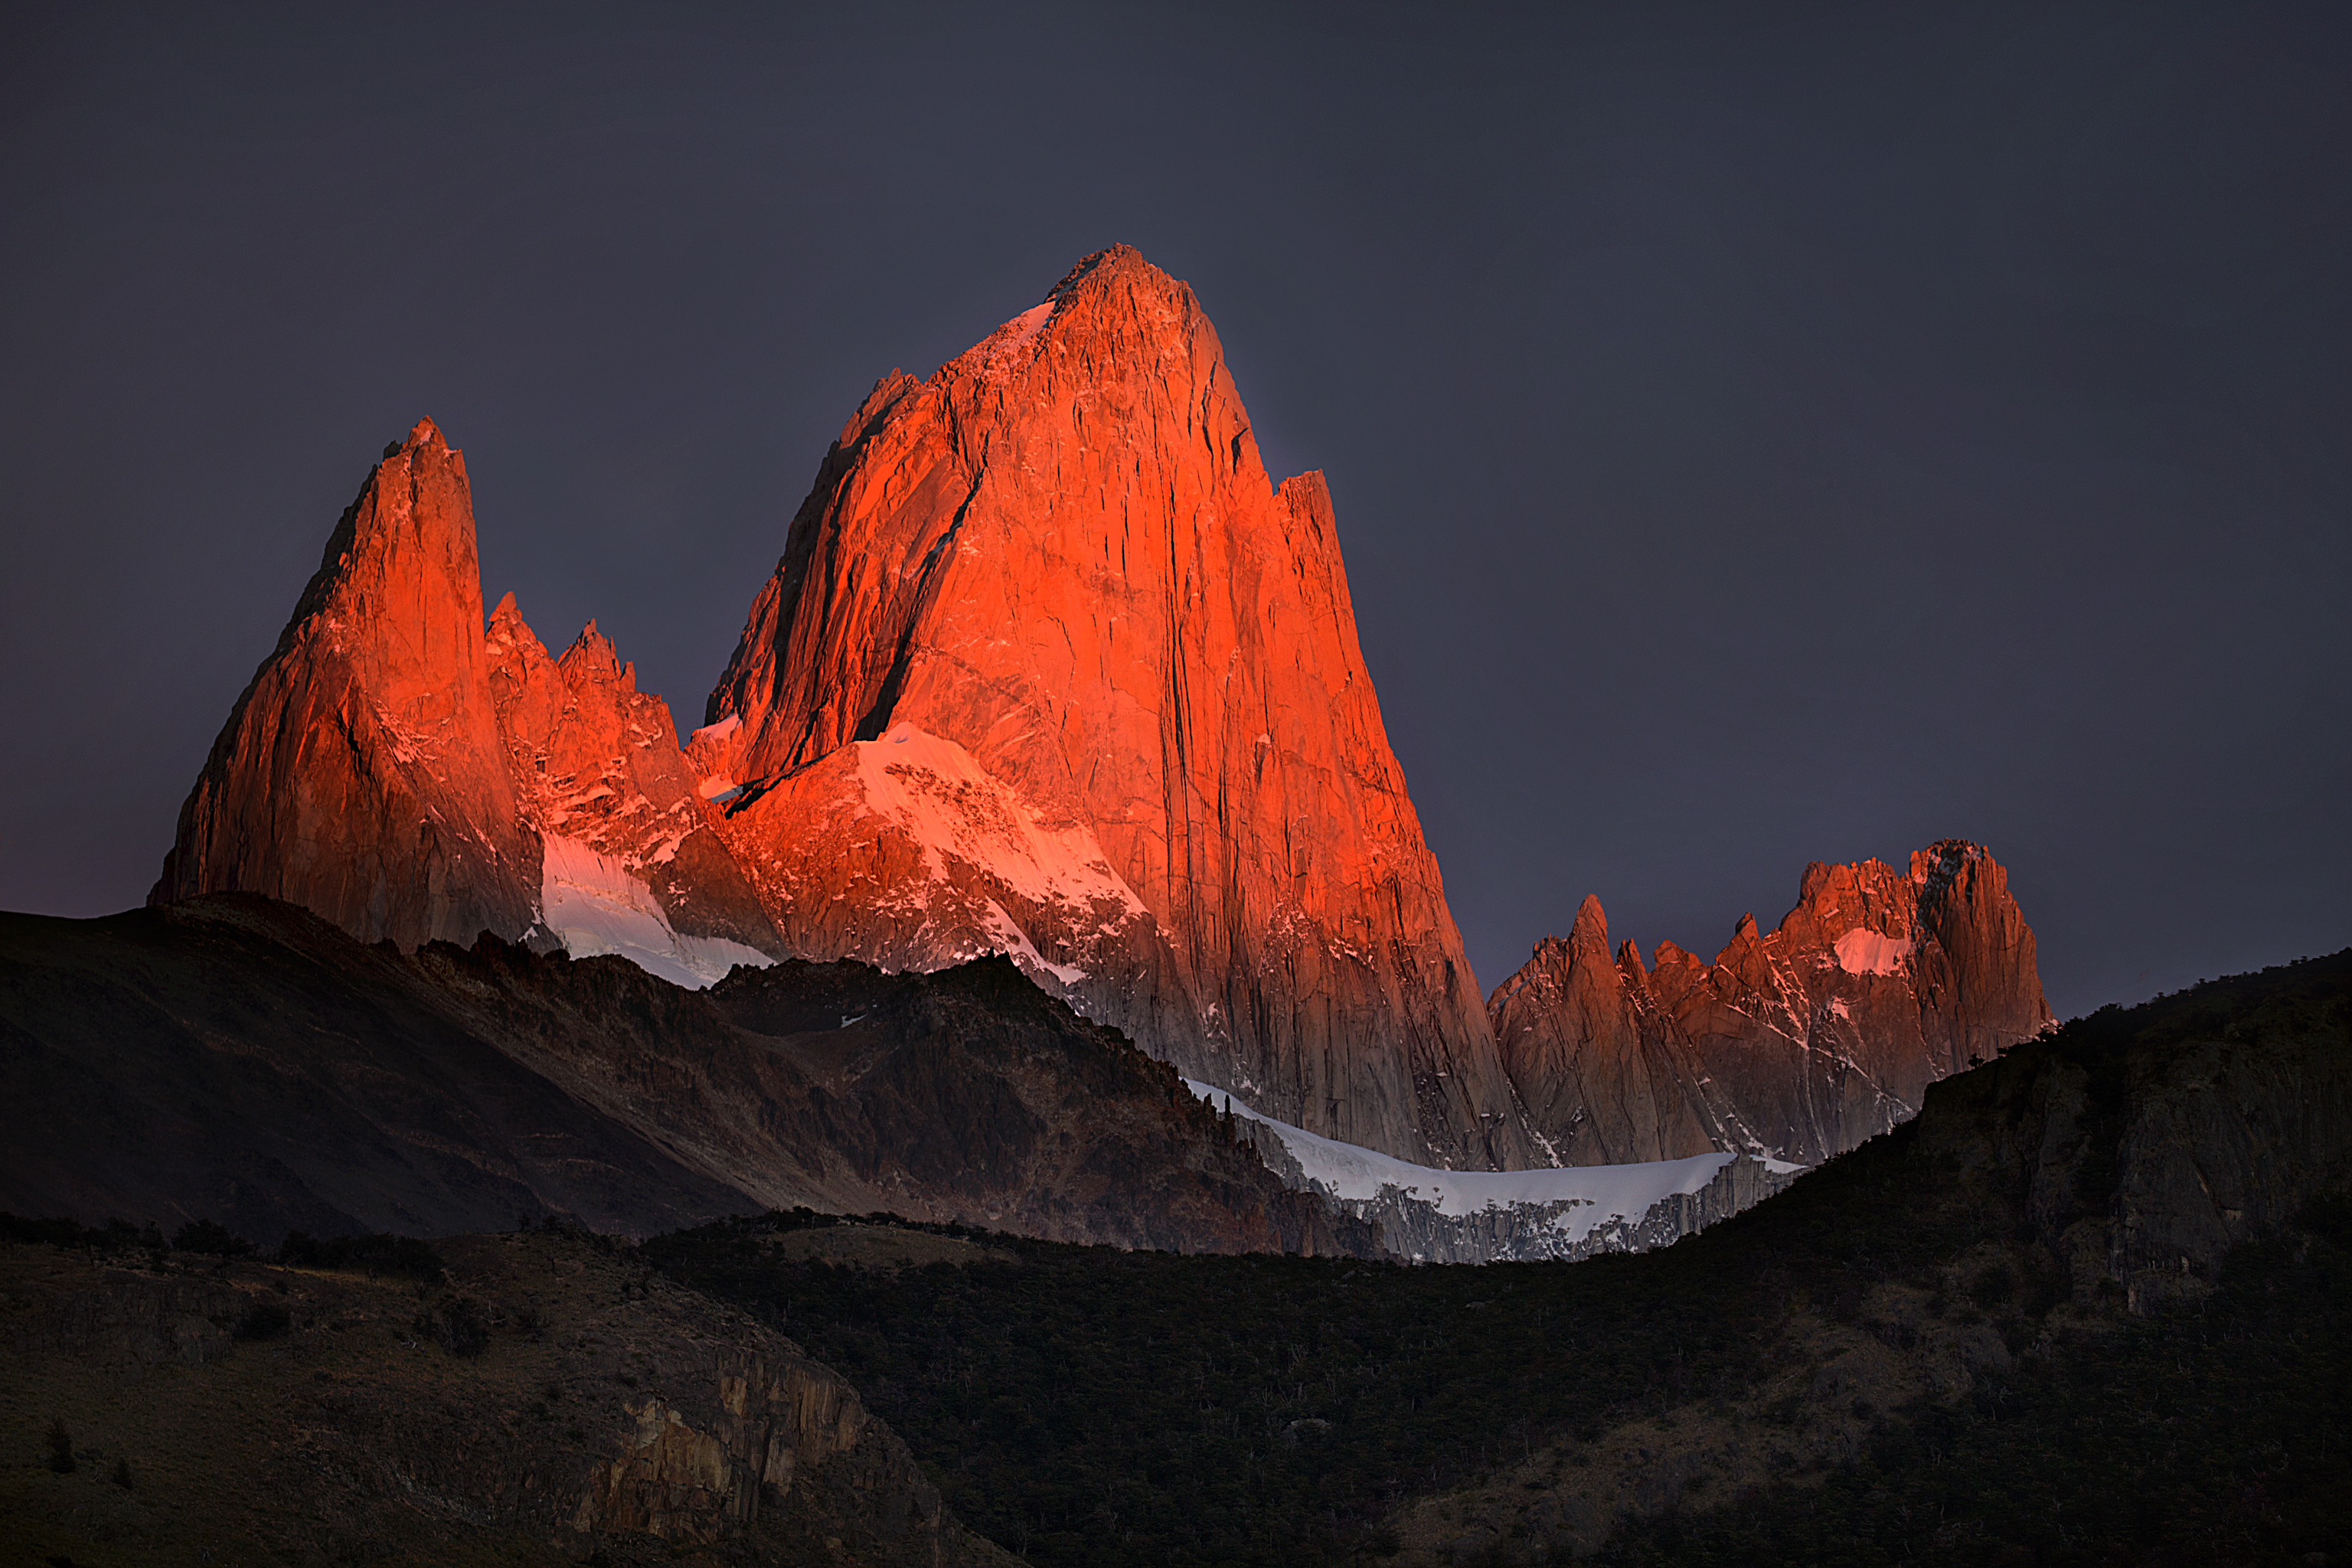 red-fitz-roy Frank Hausdörfer